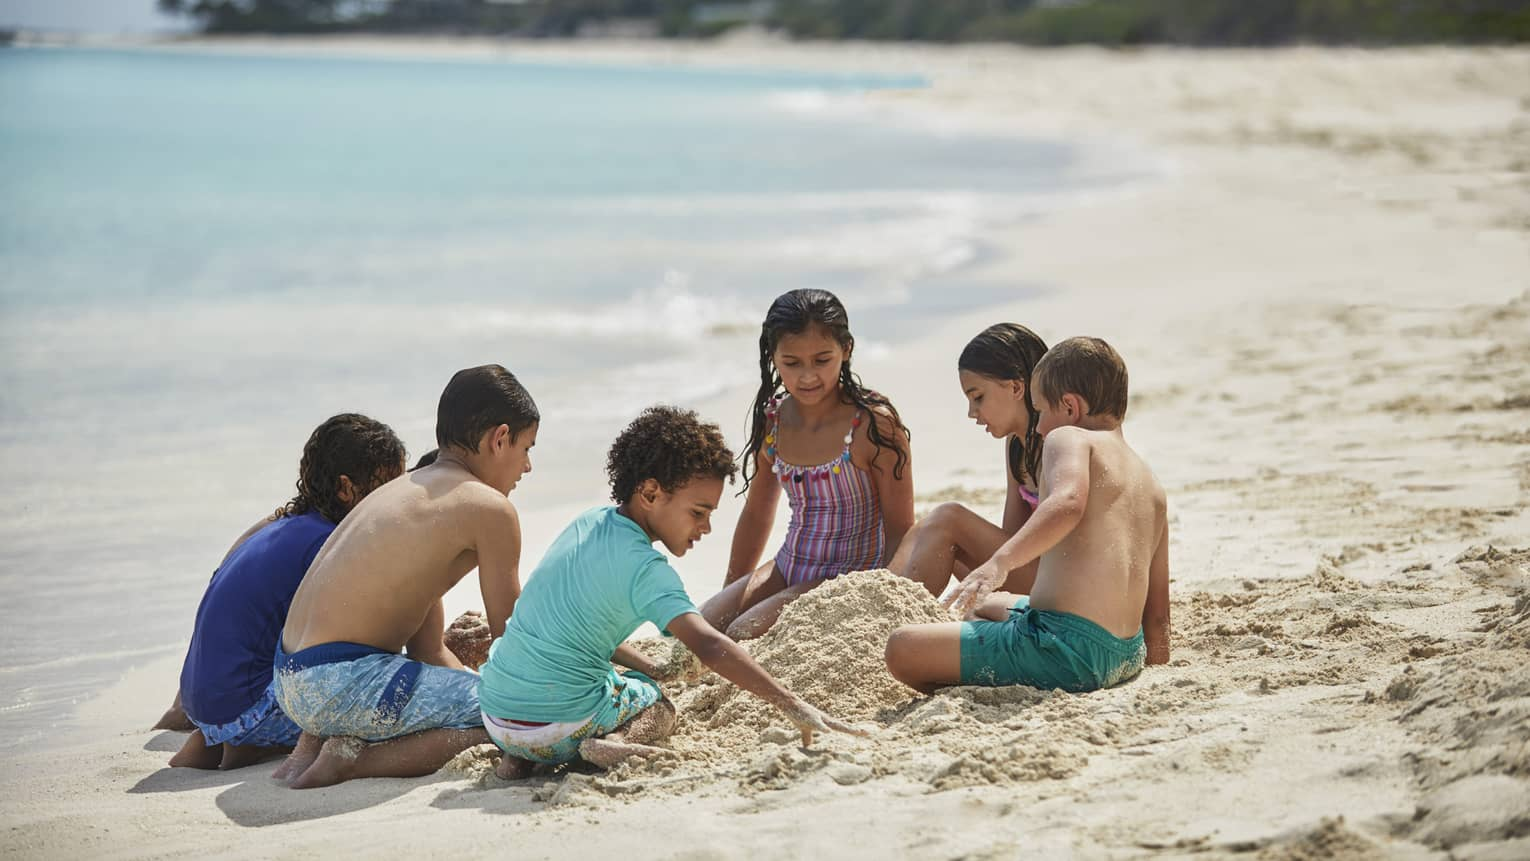 A group of children plays in the sand together on the beach